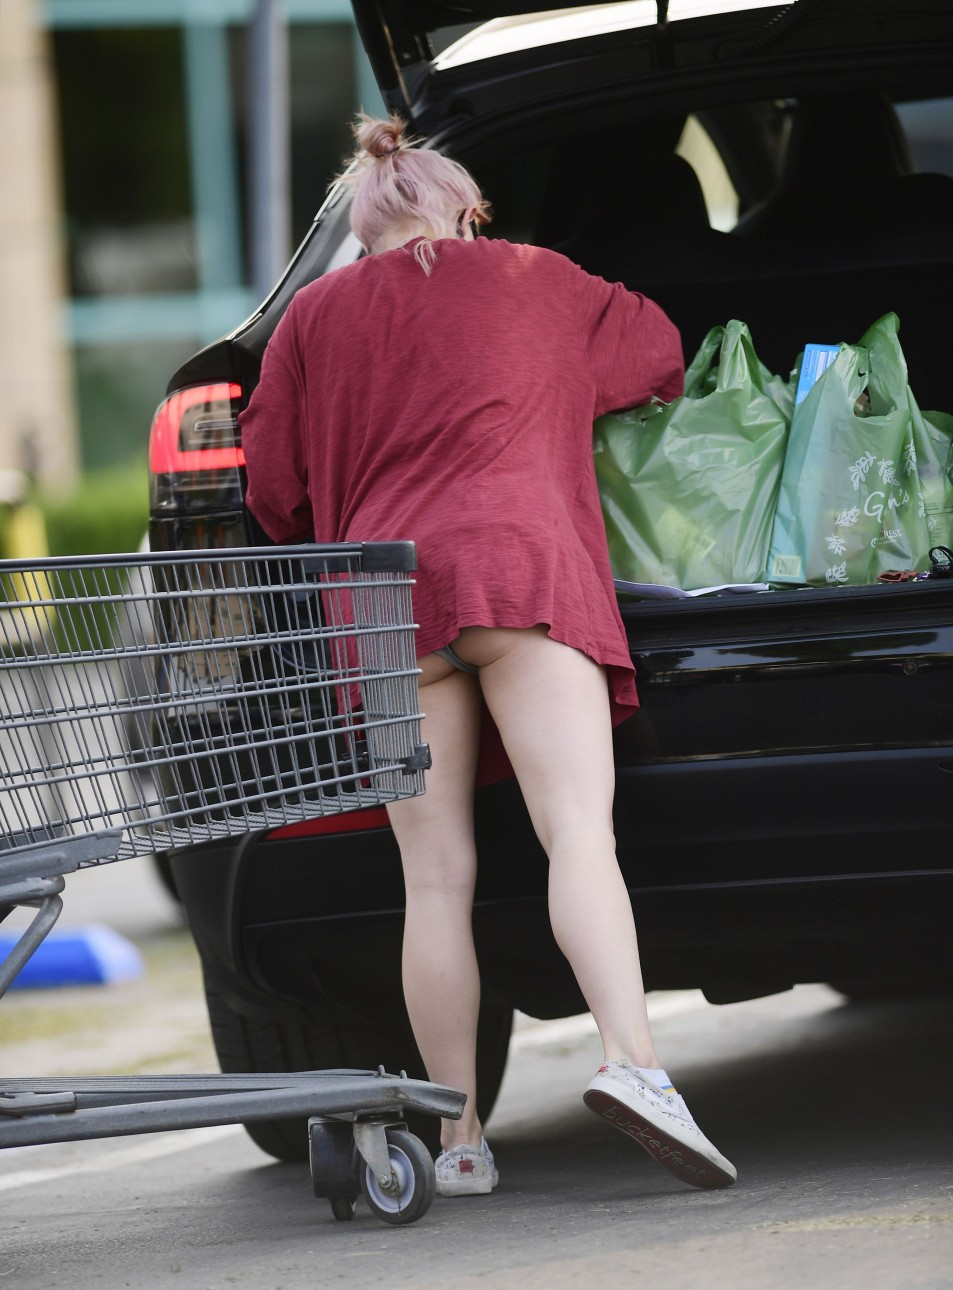 Ariel-Winter-Upskirt-while-grocery-shopping-in-Los-Angeles-992020-2.jpg